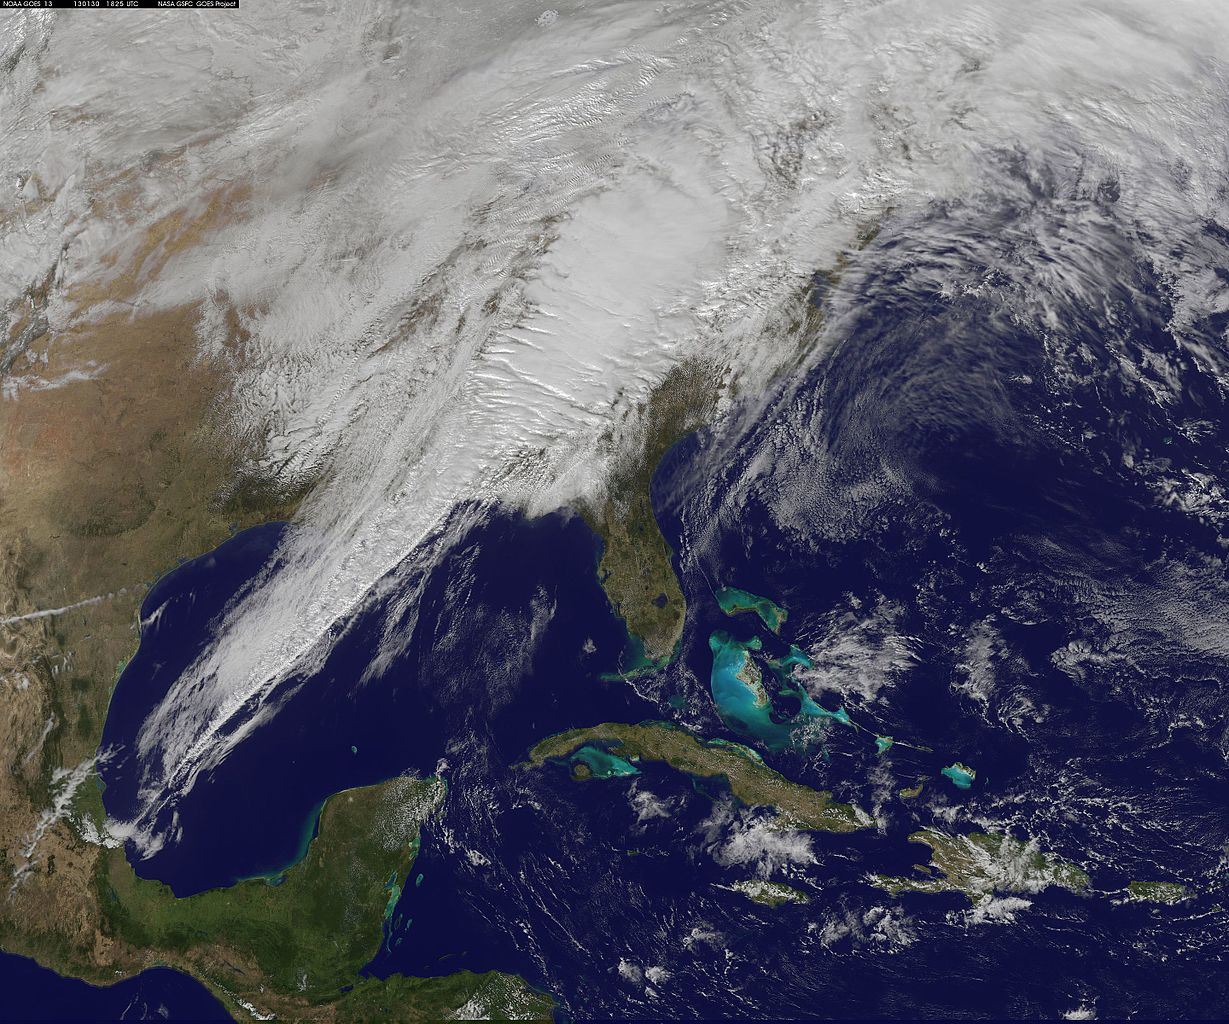 FileSatellite Image Shows Eastern US Severe Weather System - Us severe weather alerts map